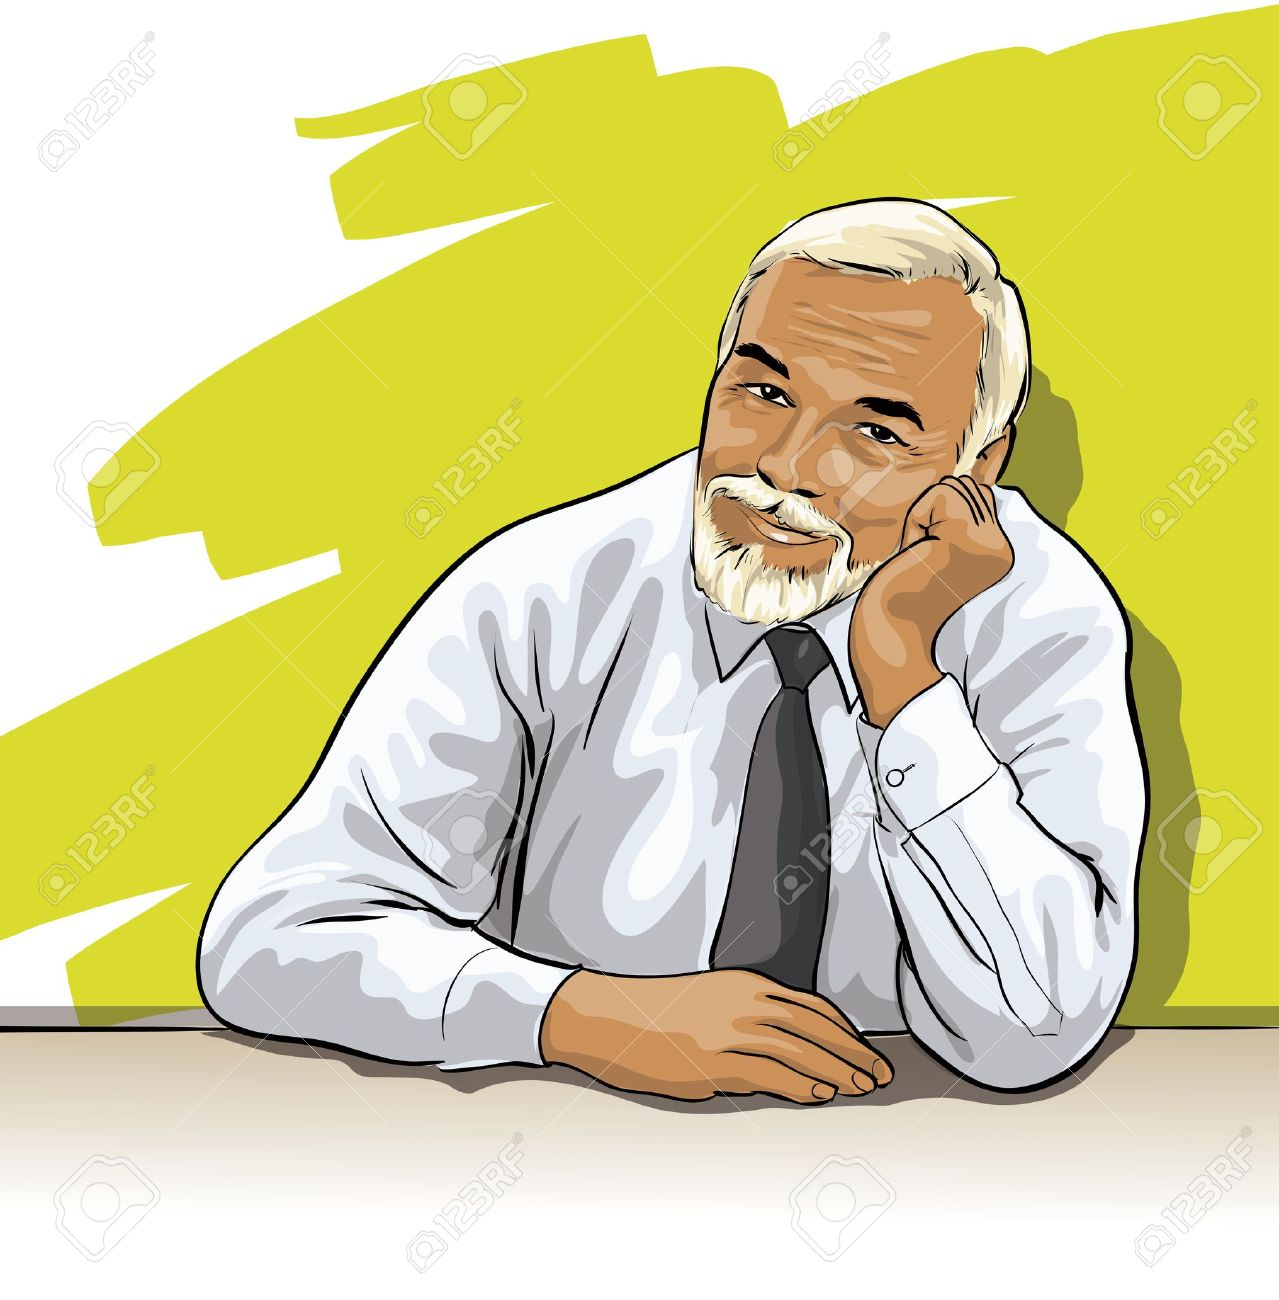 Indian old man clipart.